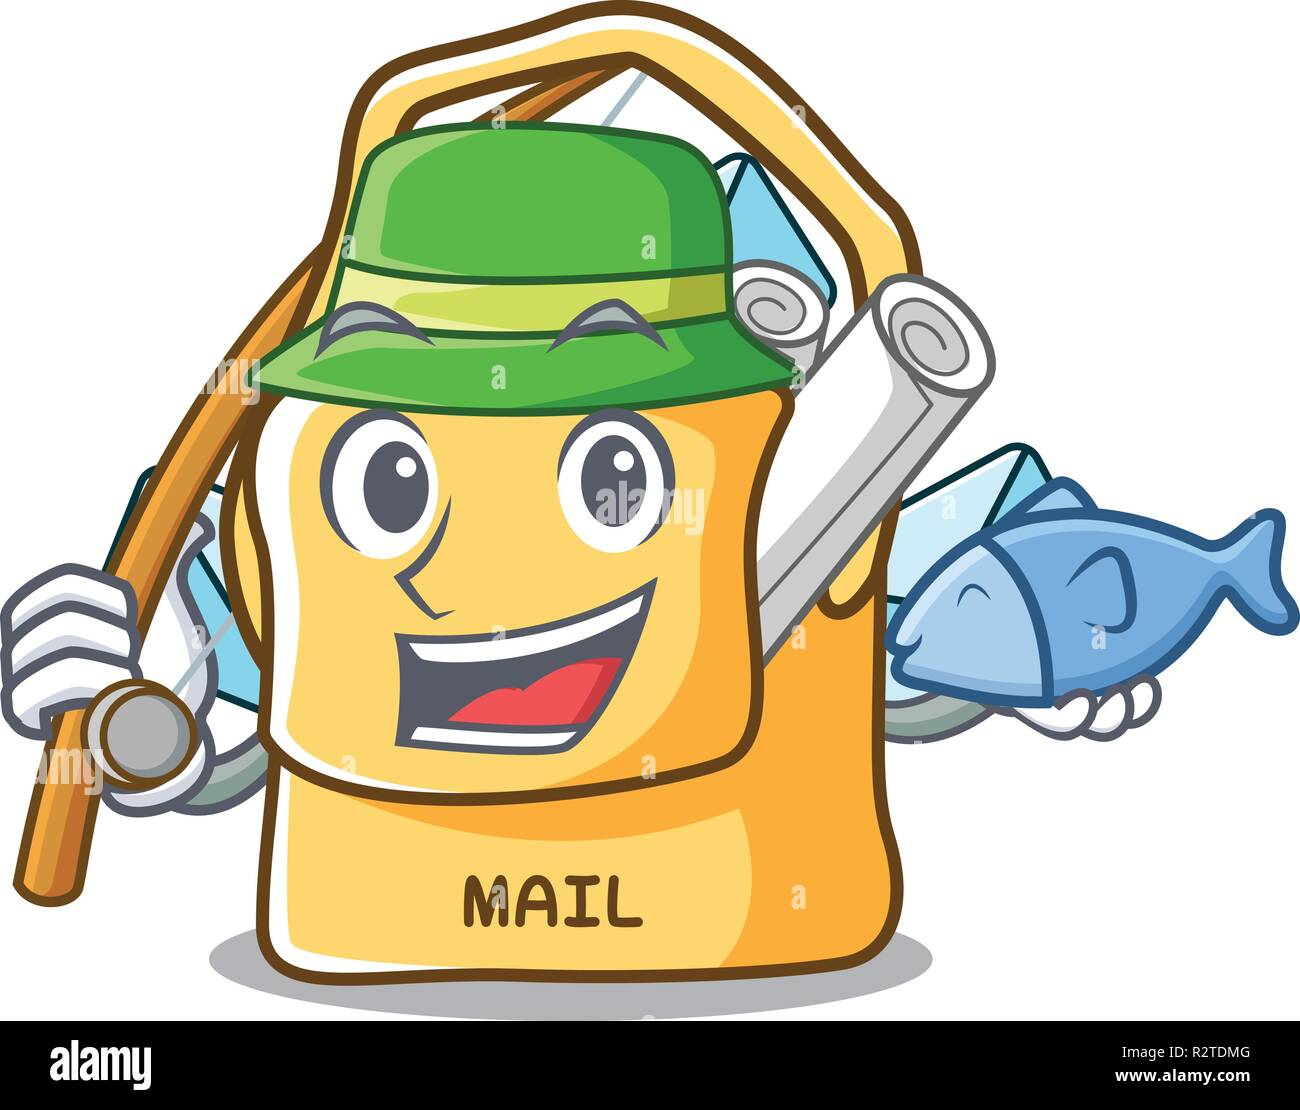 Fishing mail bag character on table front - Stock Image